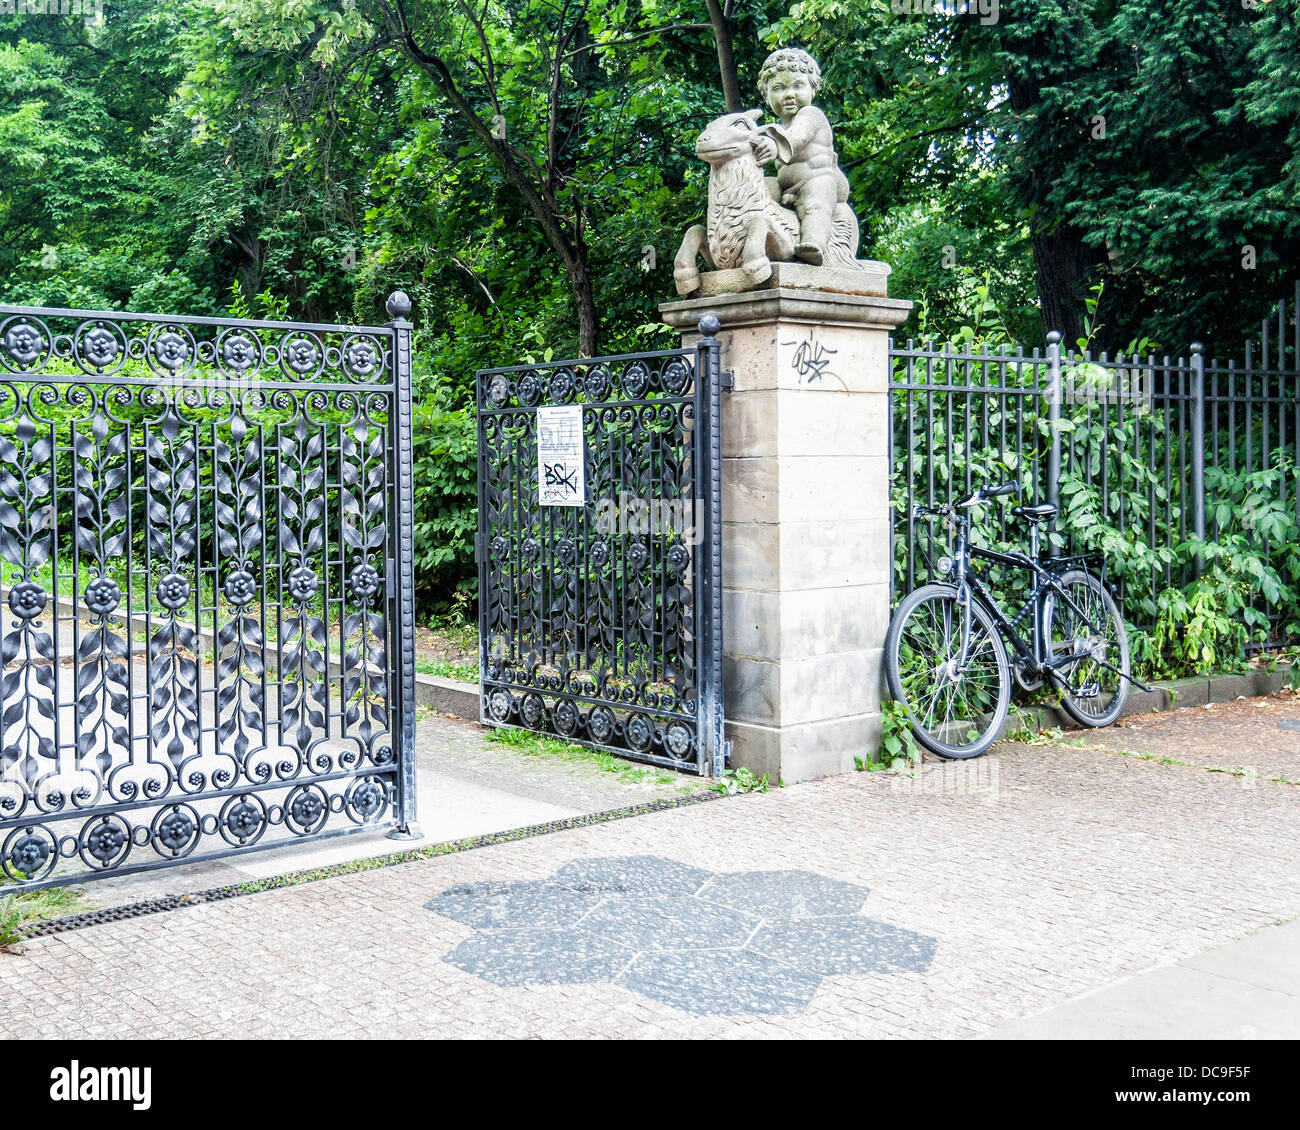 Gates of the Volkspark Friedrichshain which houses the Märchenbrunnen  - a fountain of fairy tales - Berlin - Stock Image